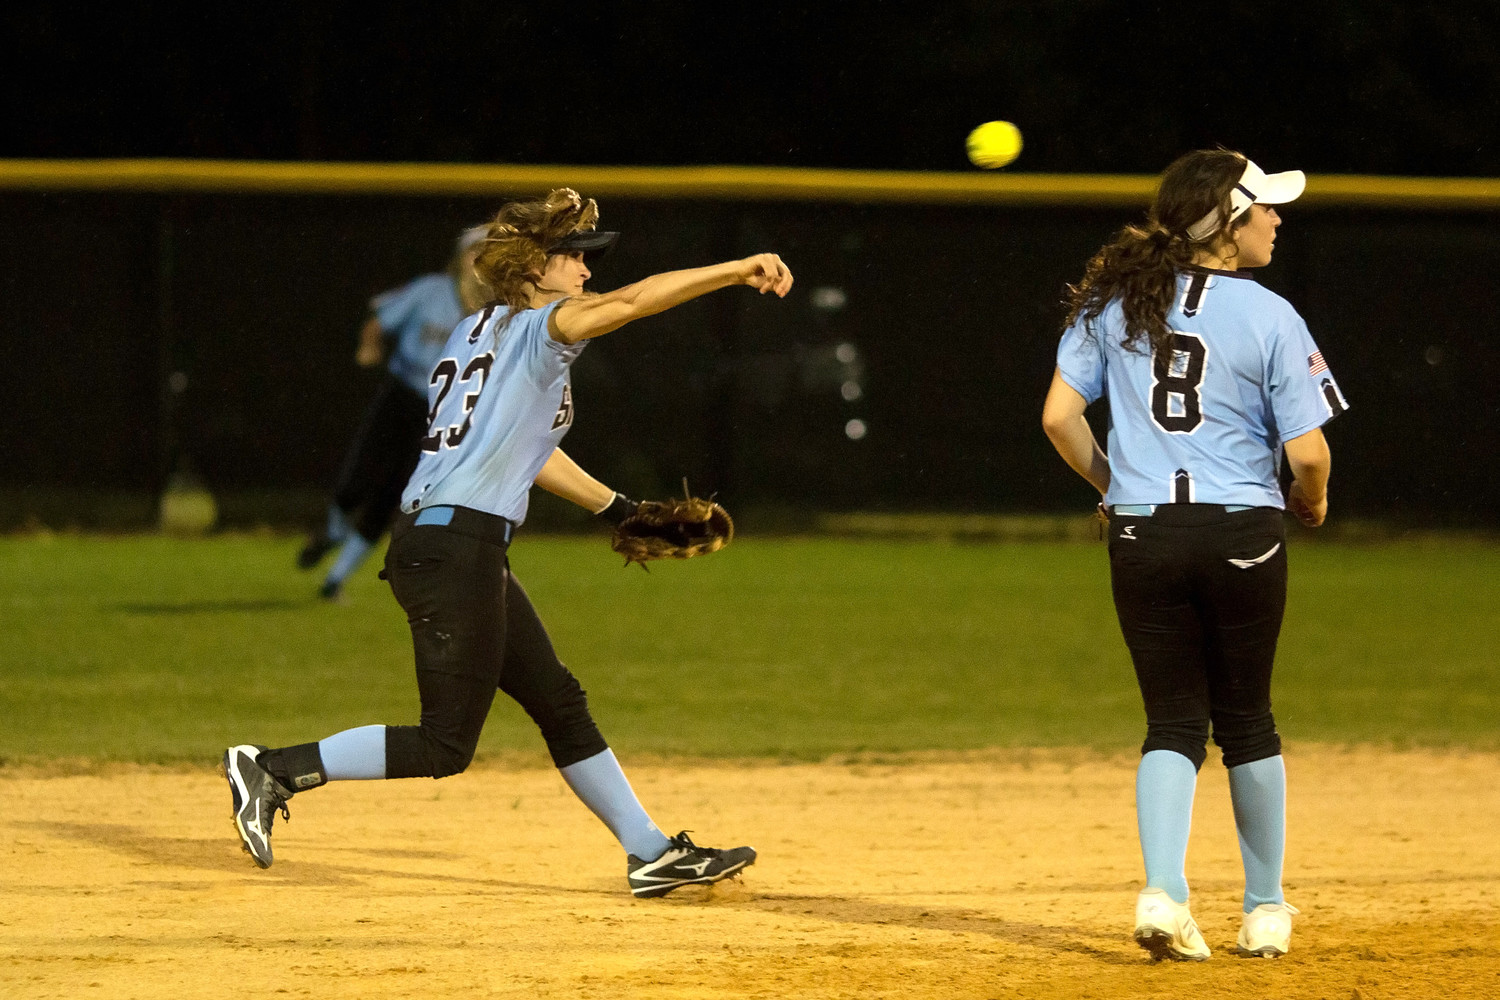 Kiley Hennessey makes the throw to first on a ground ball.